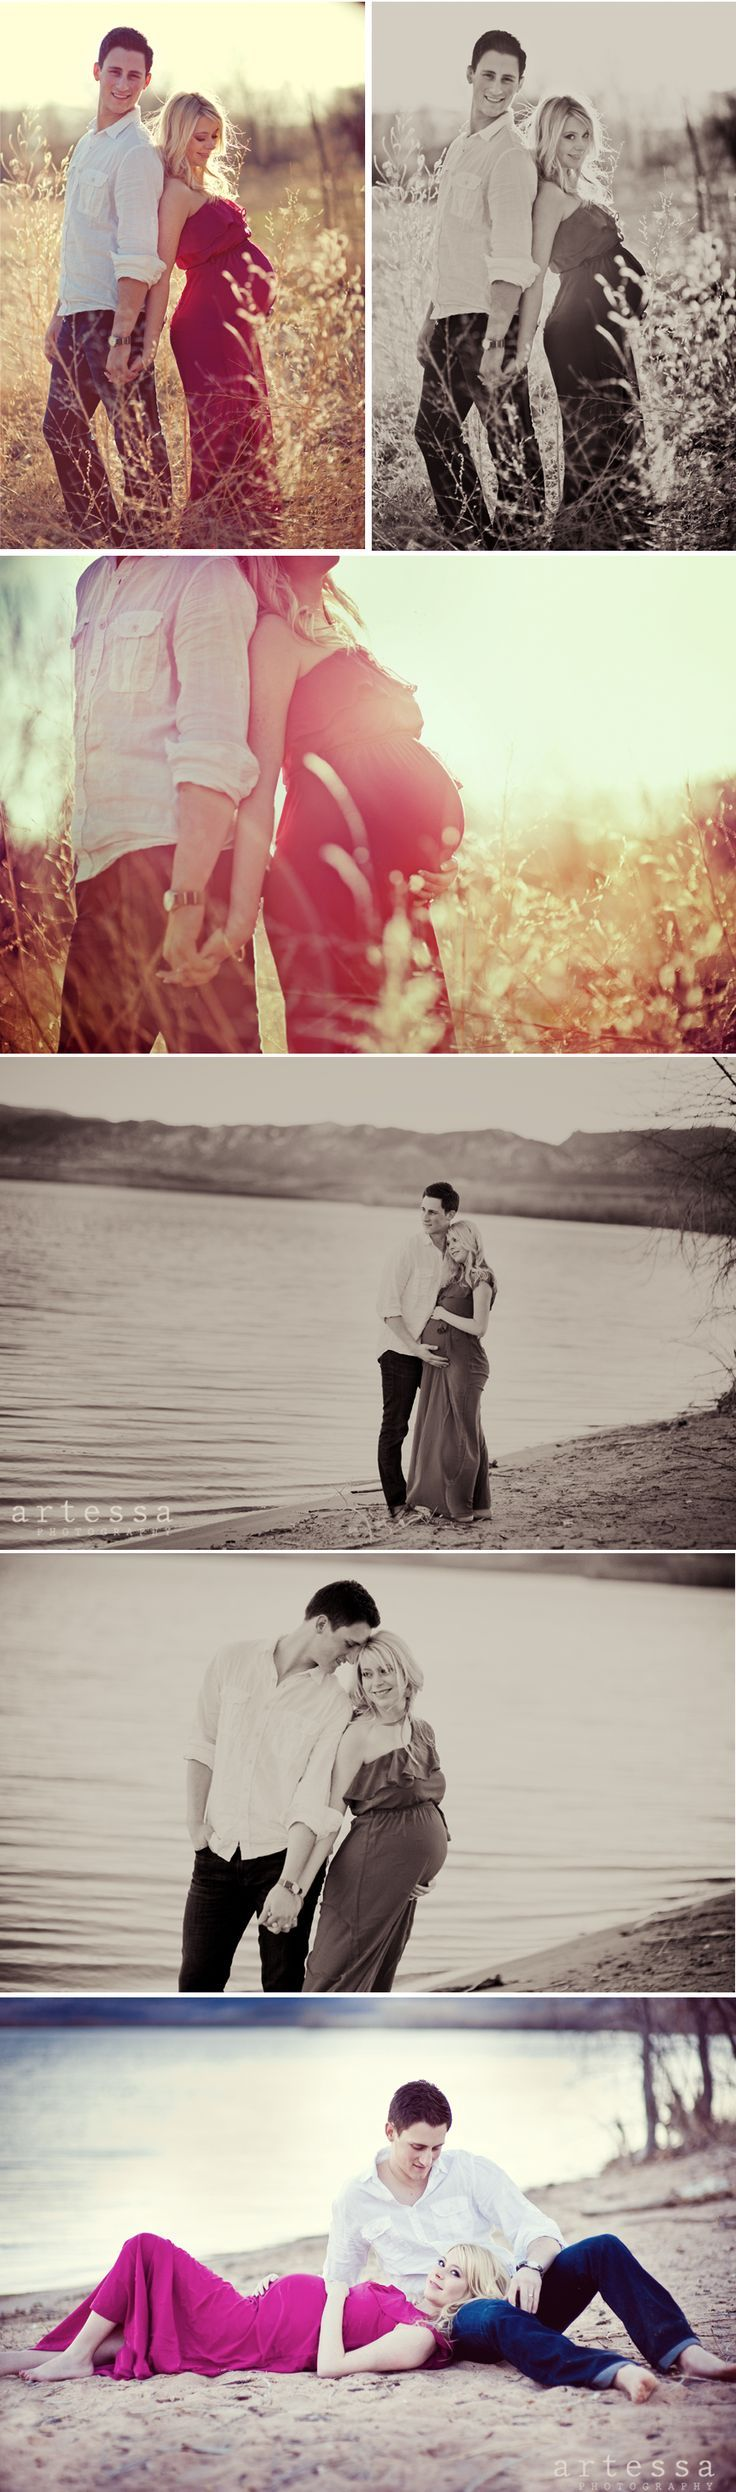 I like the variety of different pictures, using two different locations such as the beach and the long grass.